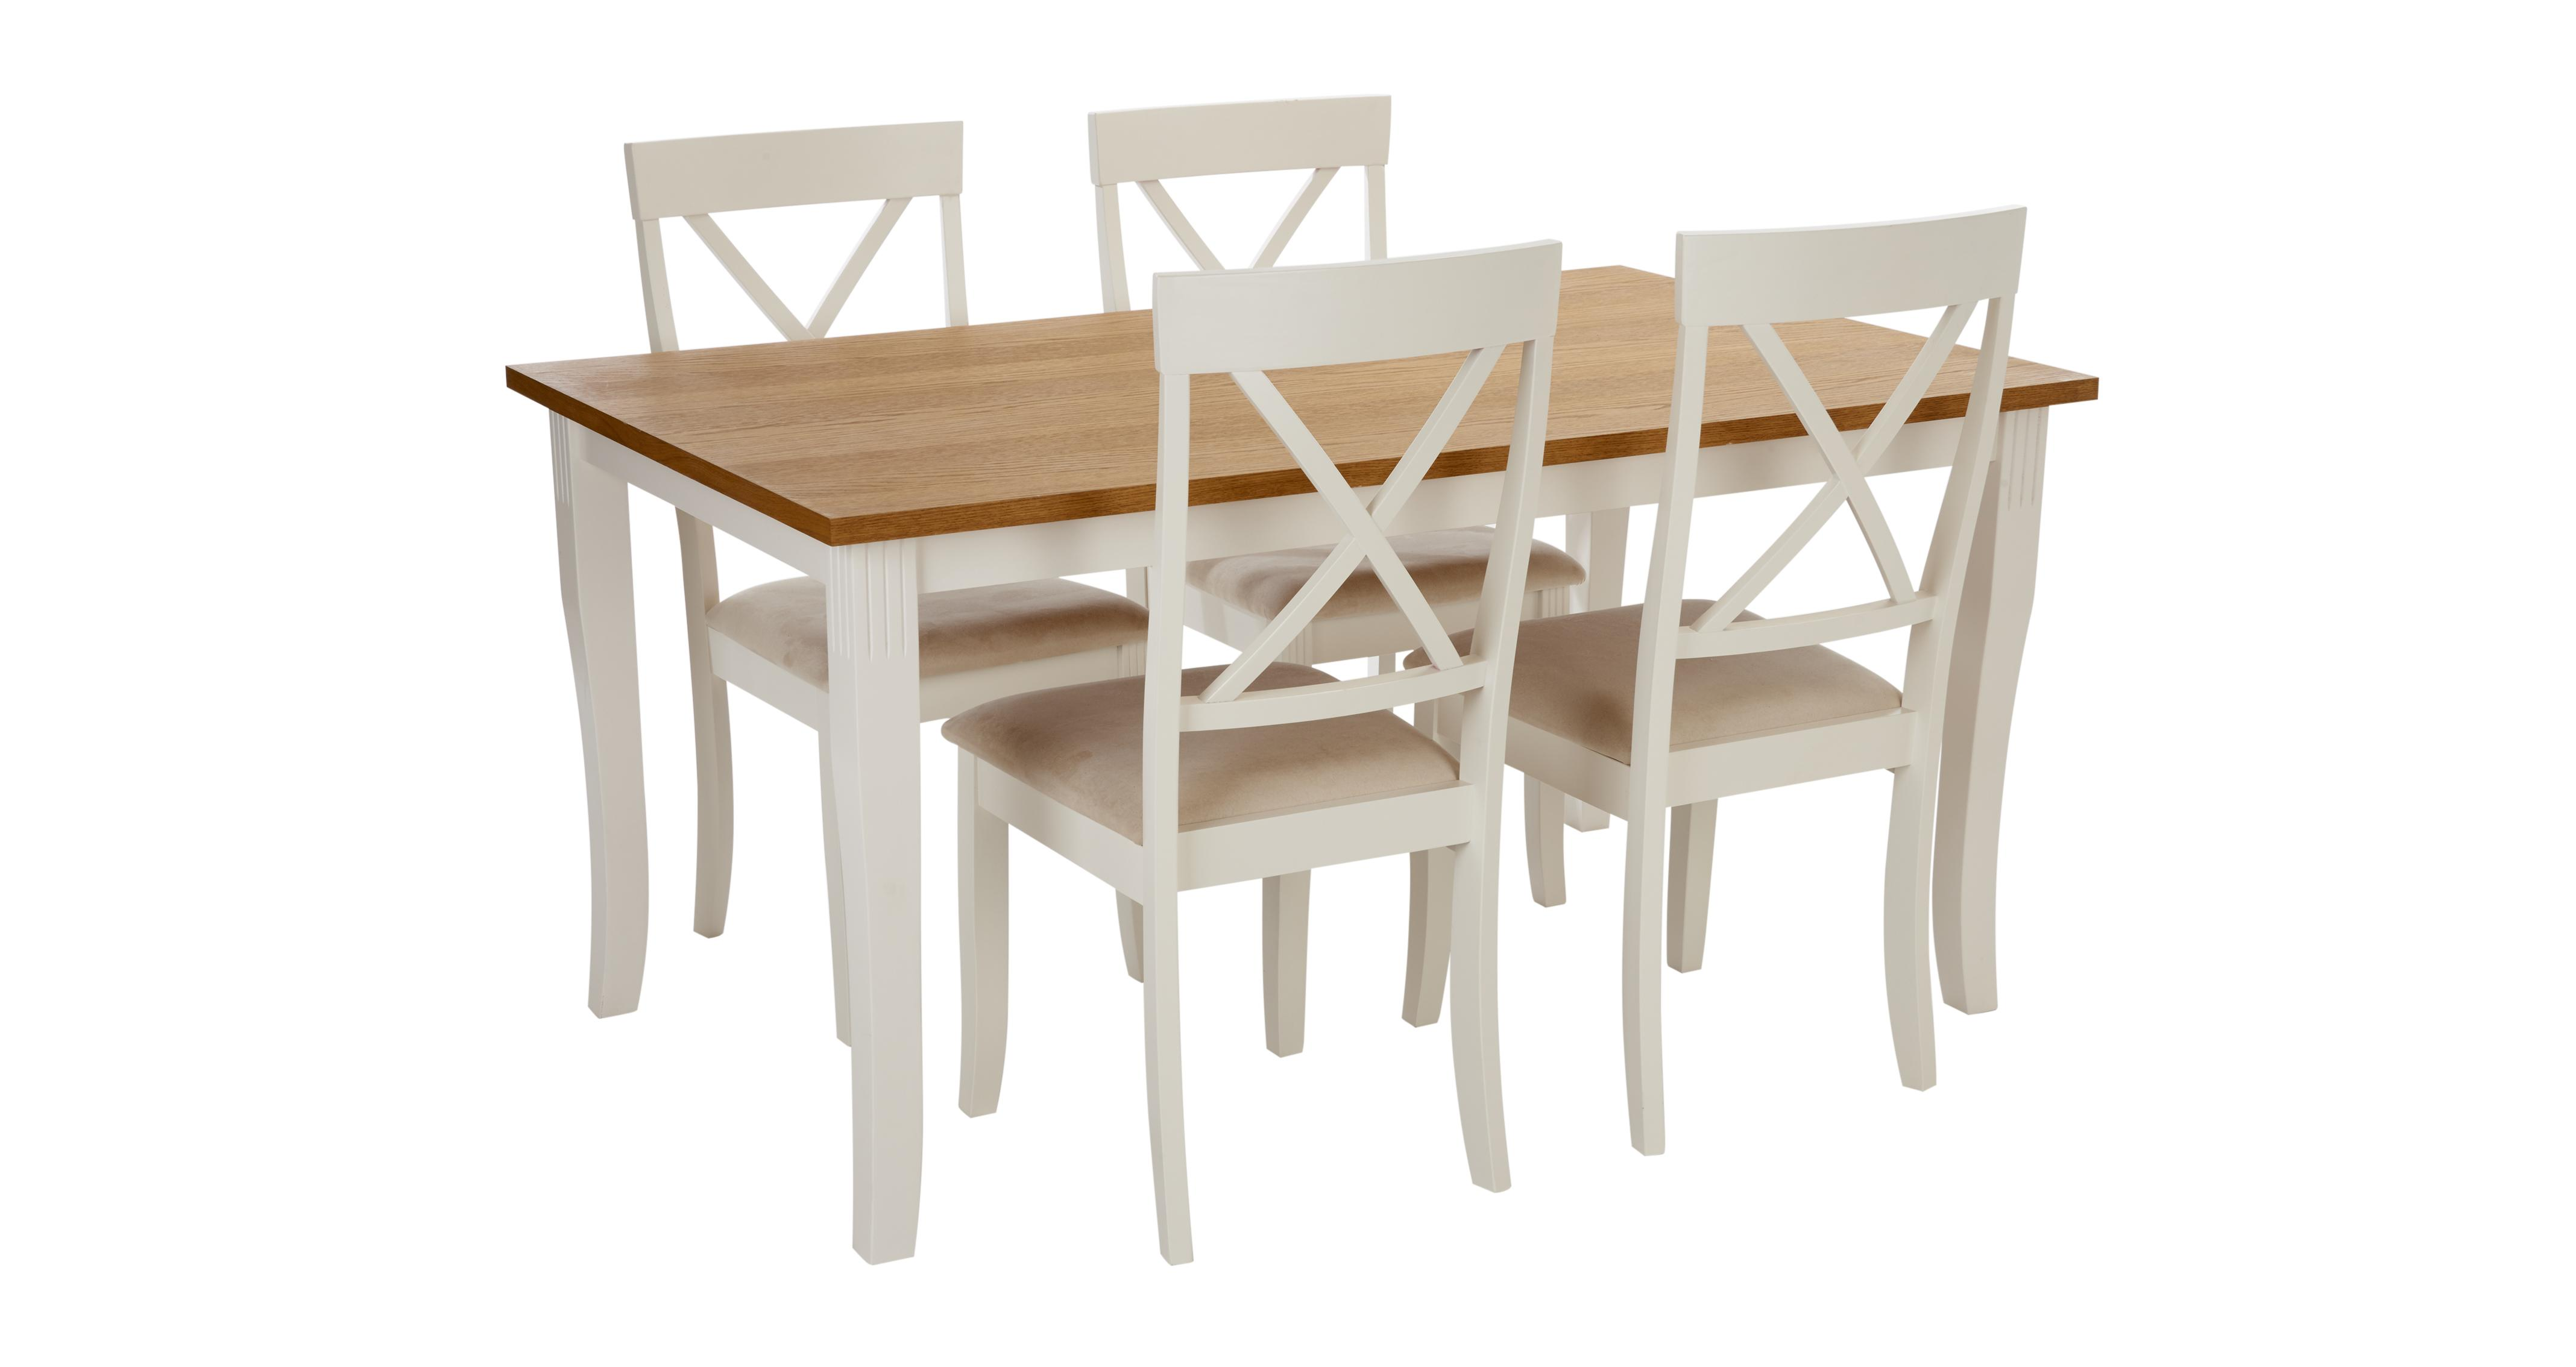 Hamptons Style Dining Chairs Evesham Rectangular Dining Table And Set Of 4 Chairs Dfs